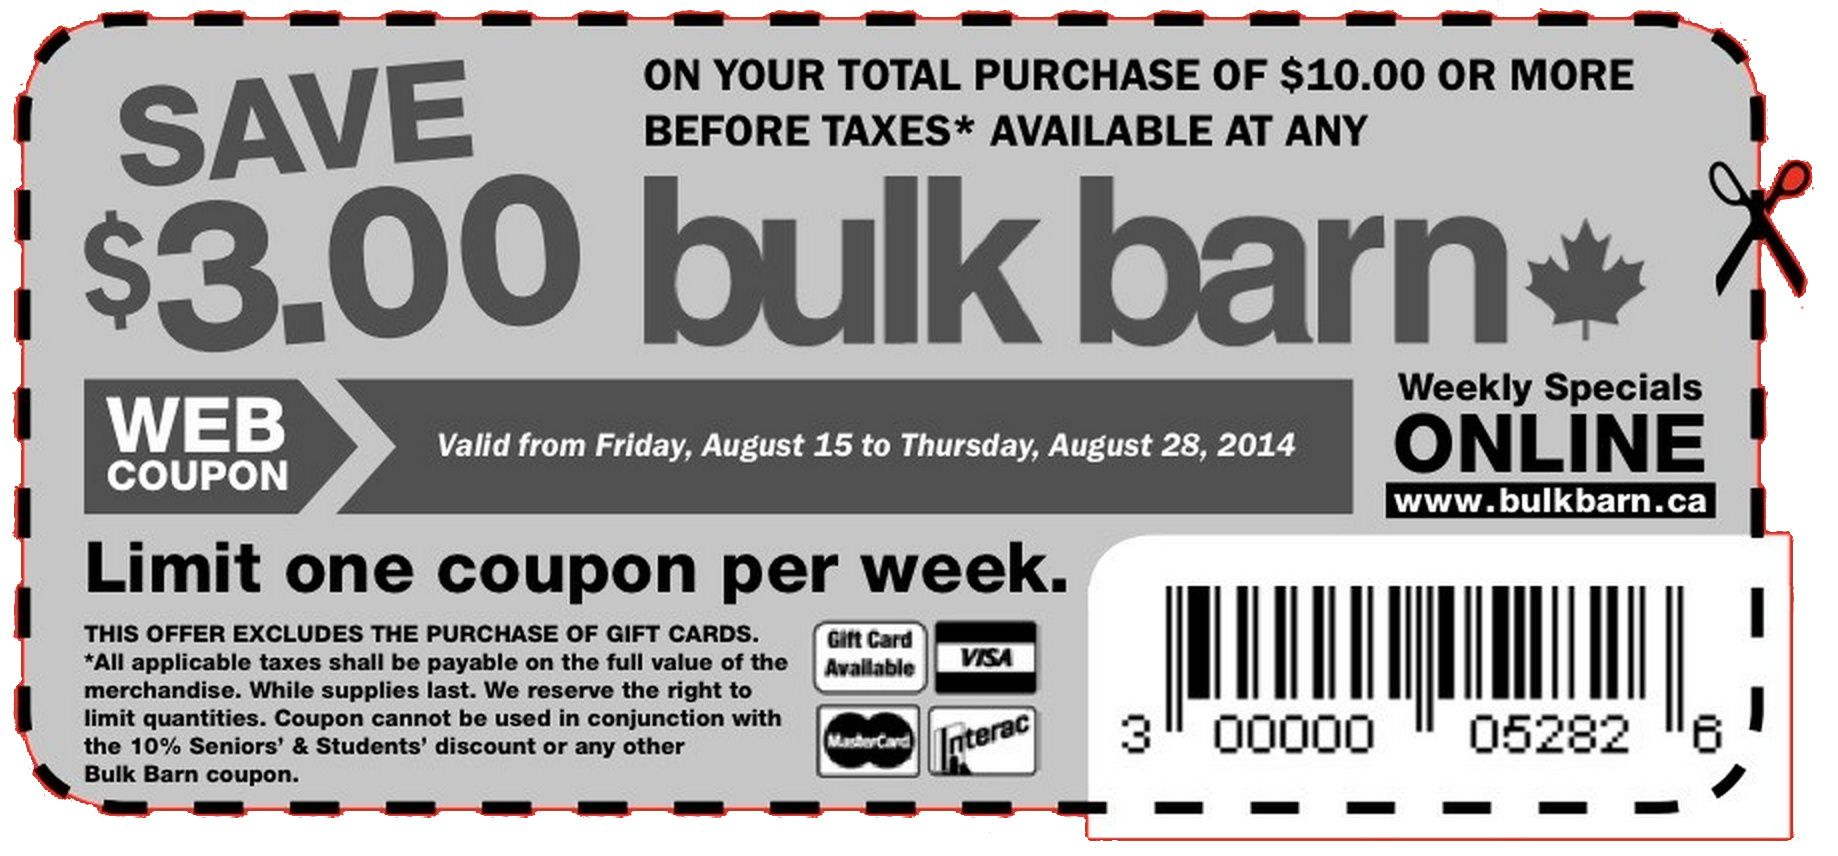 Bulk Barn Printable Coupon: $3 Off Your Purchase of $10 Or